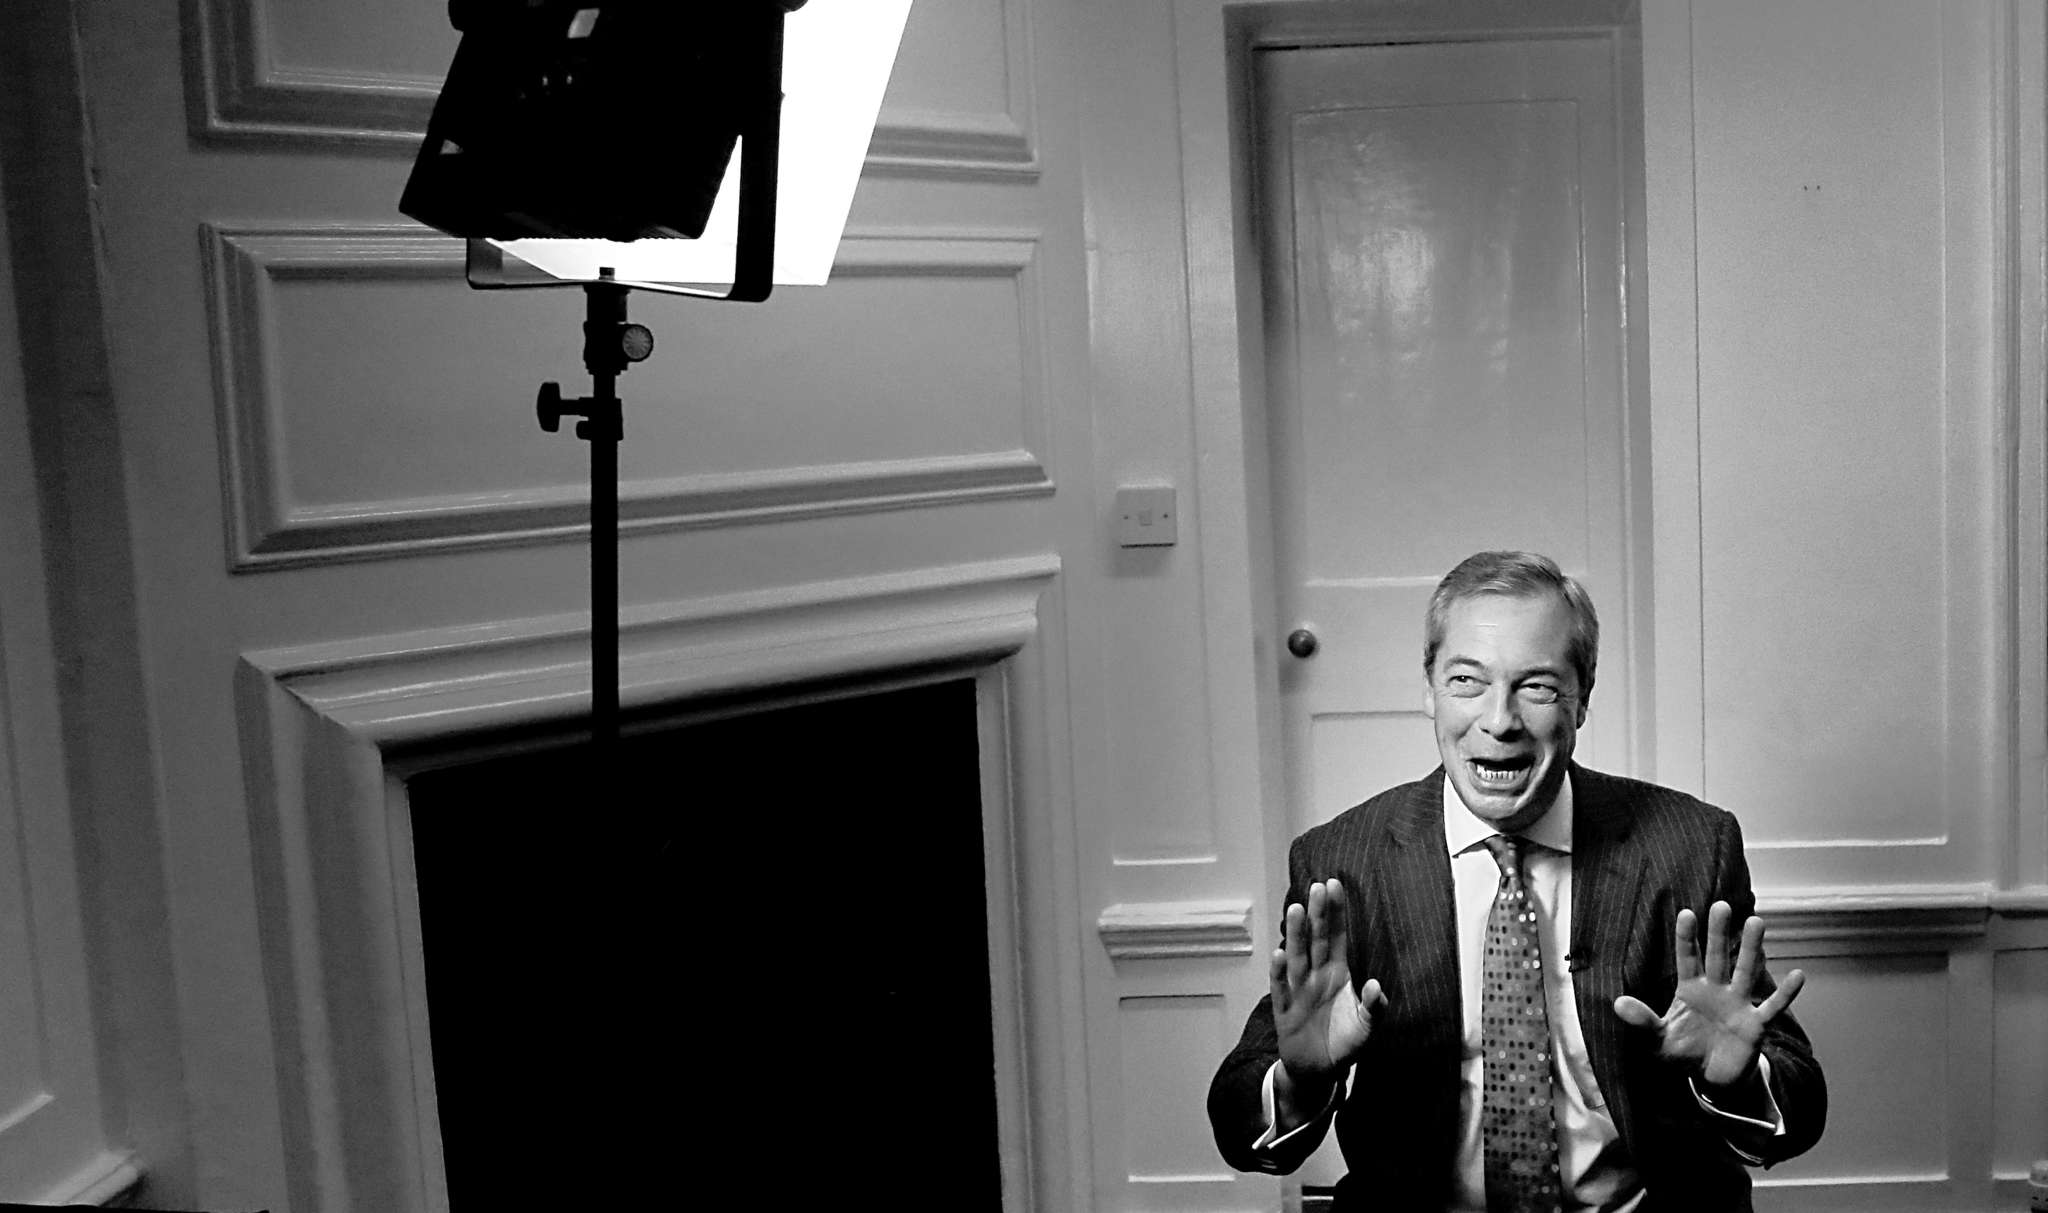 Nigel Farage, leader of the Brexiteers, has the support of Trump.